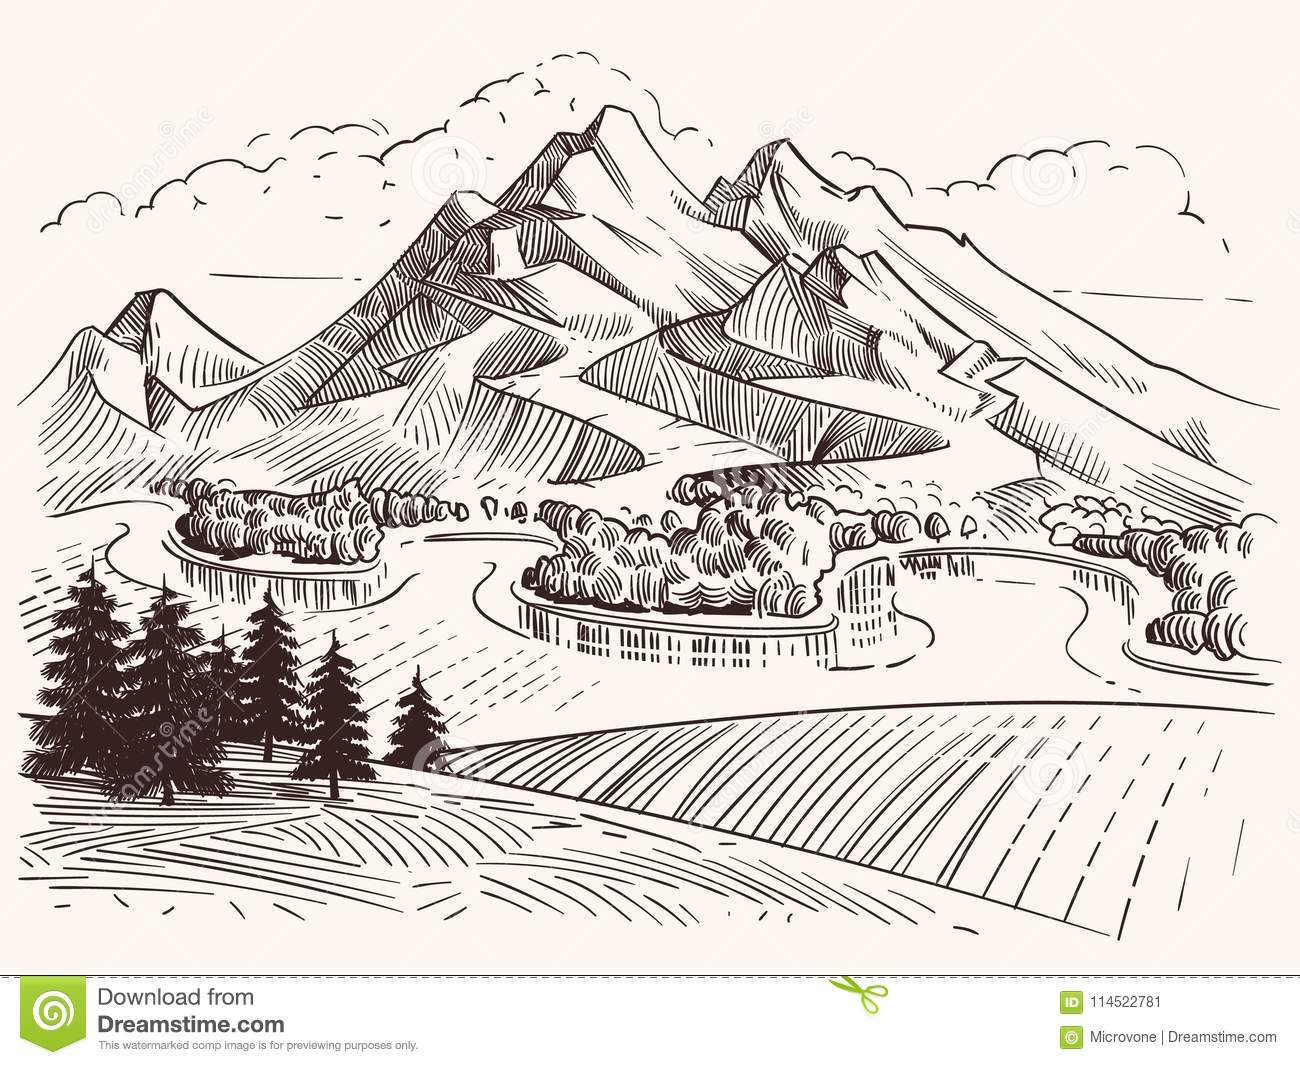 Pencil drawing mountain landscape cartoon sketch mountains and fir trees vector illustration landscape sketch mountain tree and peak hill